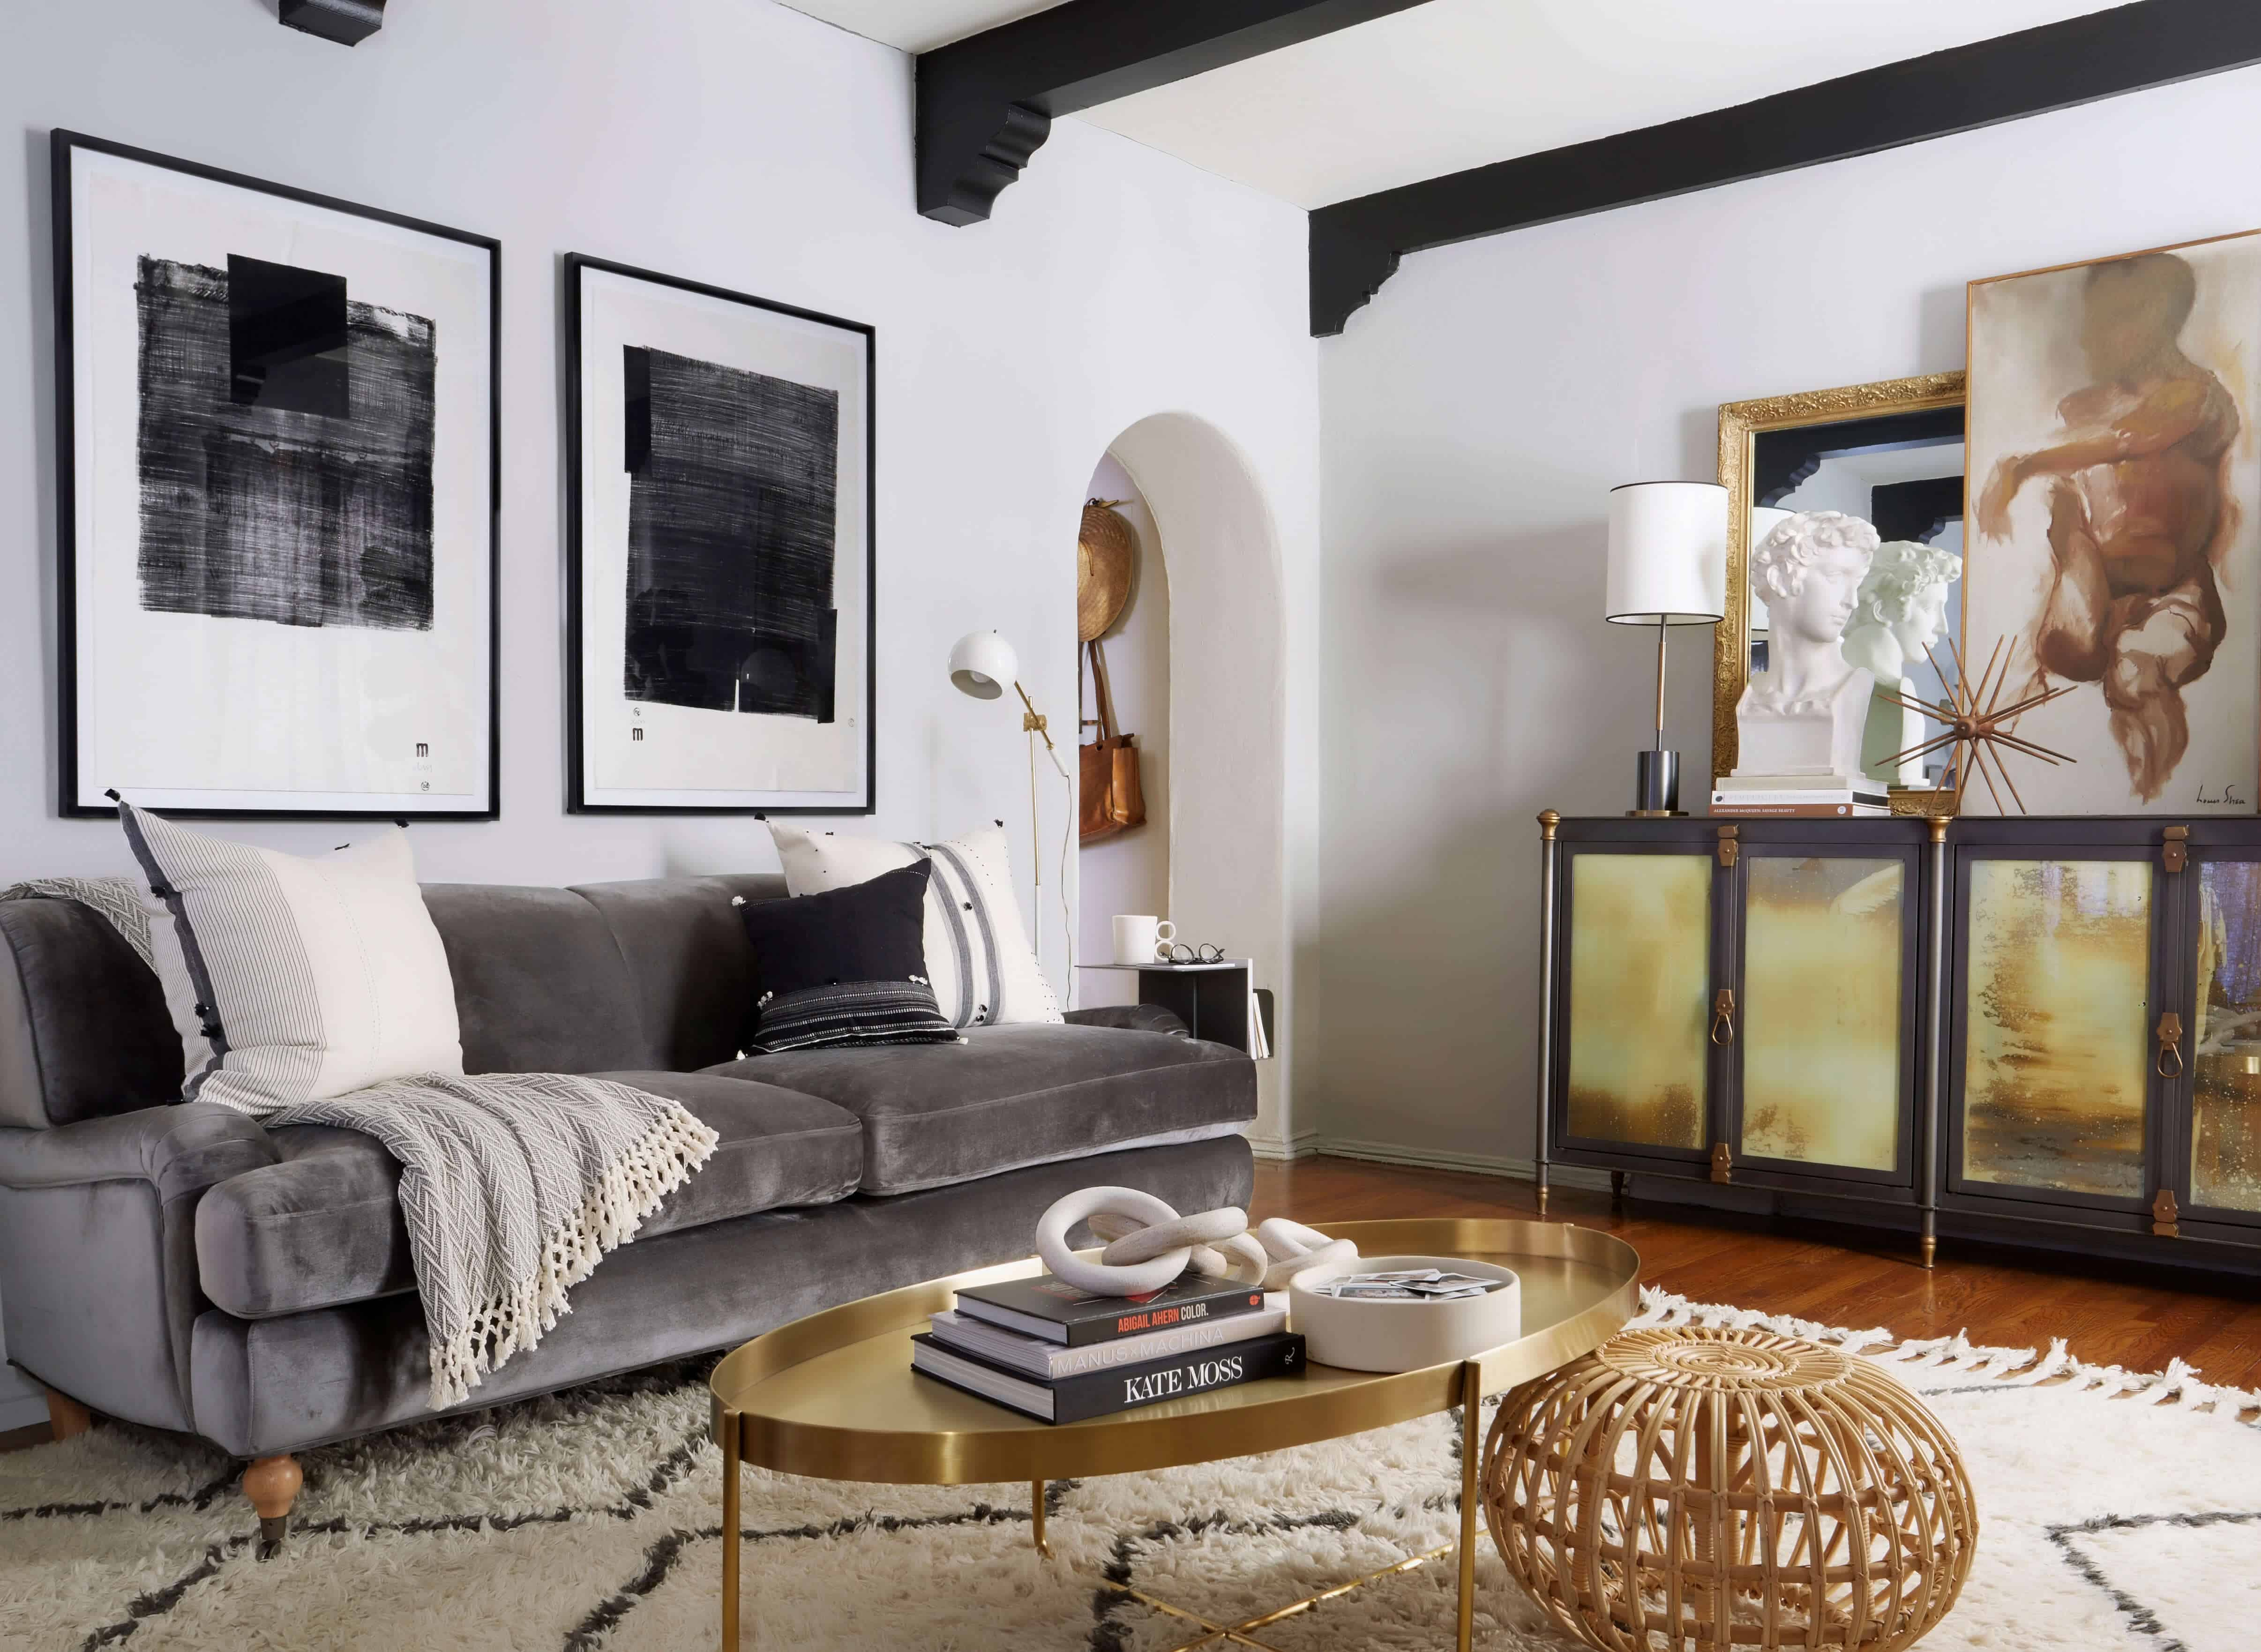 brady-tolbert-design_emily-henderson_living-room_eclectic_pavillion-grey_farrow-and-ball_brass-coffee-table_english-roll-arm_albini_masculine_traditional_west-elm_souk_flokati_leather_5